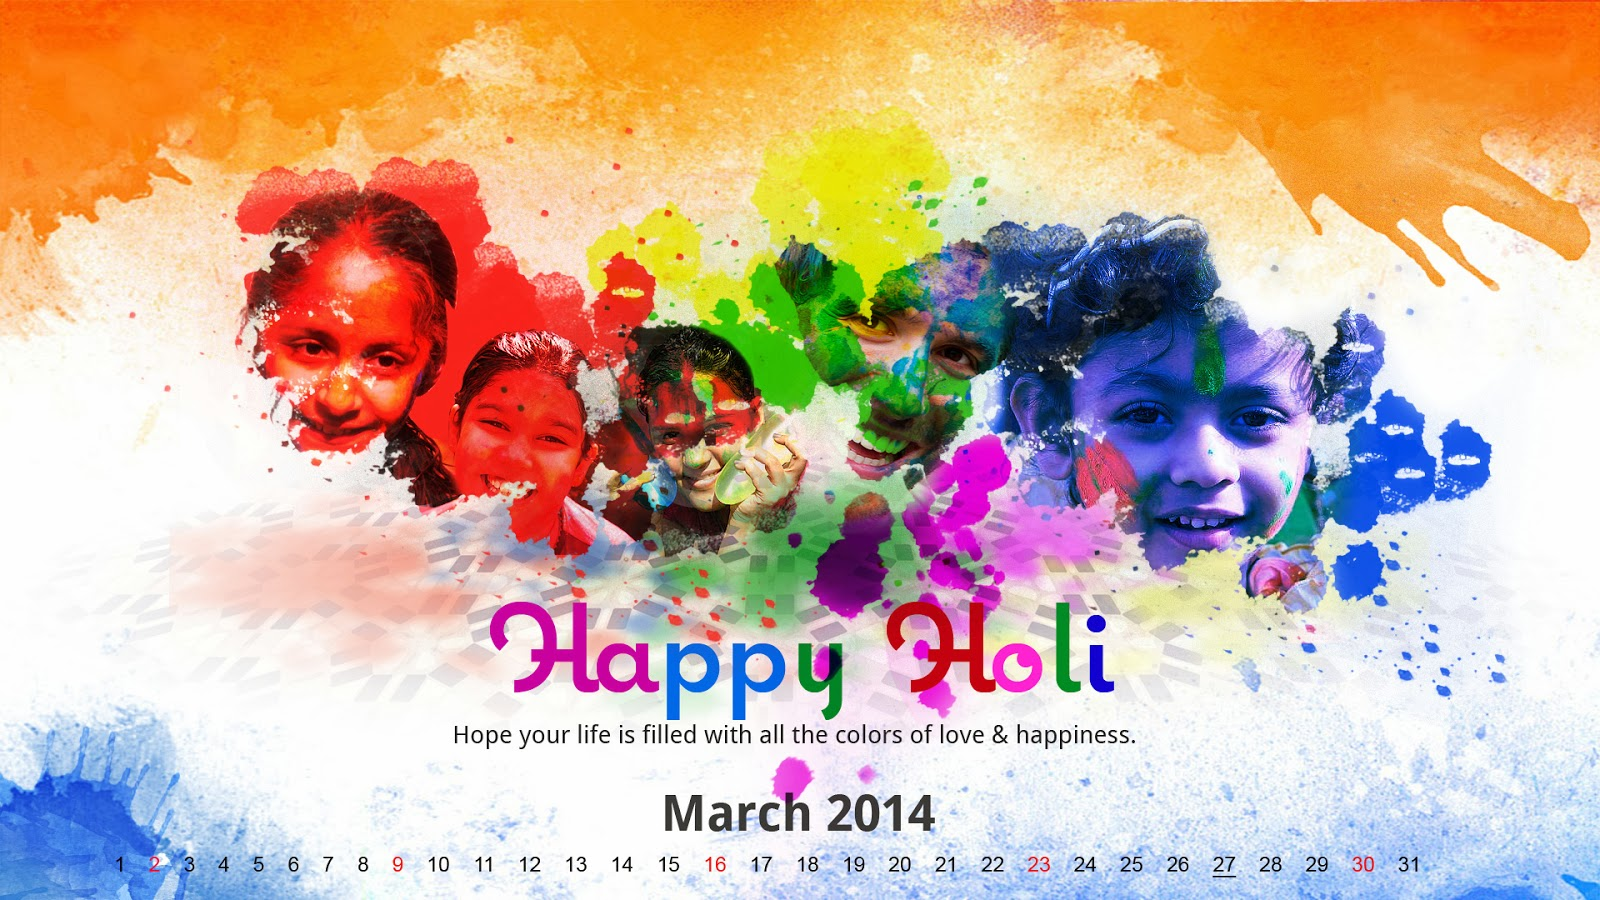 So Guys Start Scrolling Down And Check Out Our Collection On Happy Holi 2015 Computer Background HD Wallpaper